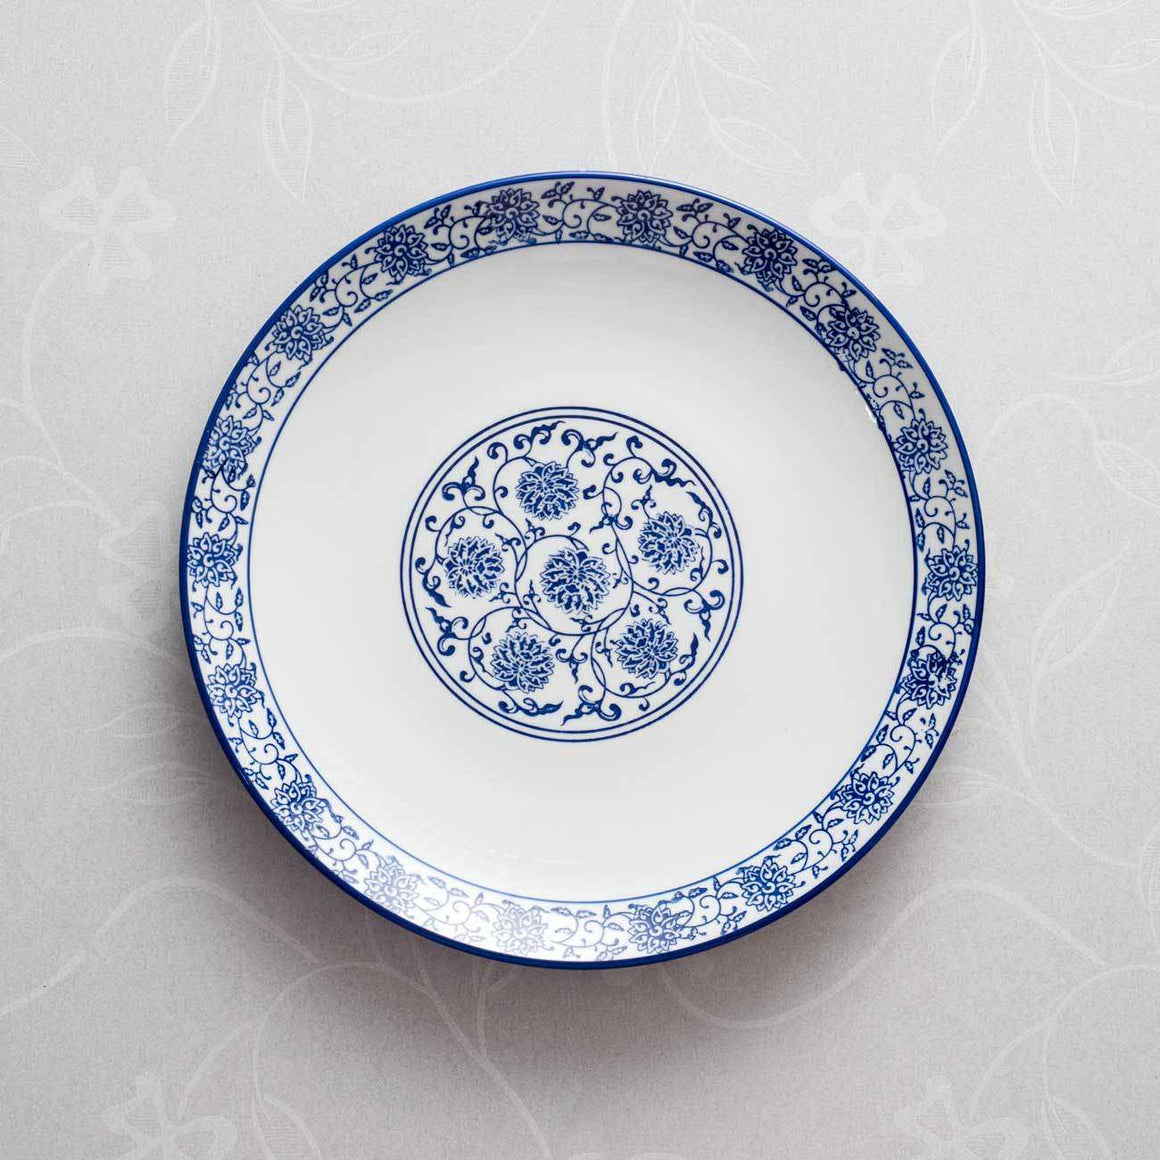 Vintage Blue and White Dinner Plate - 12""